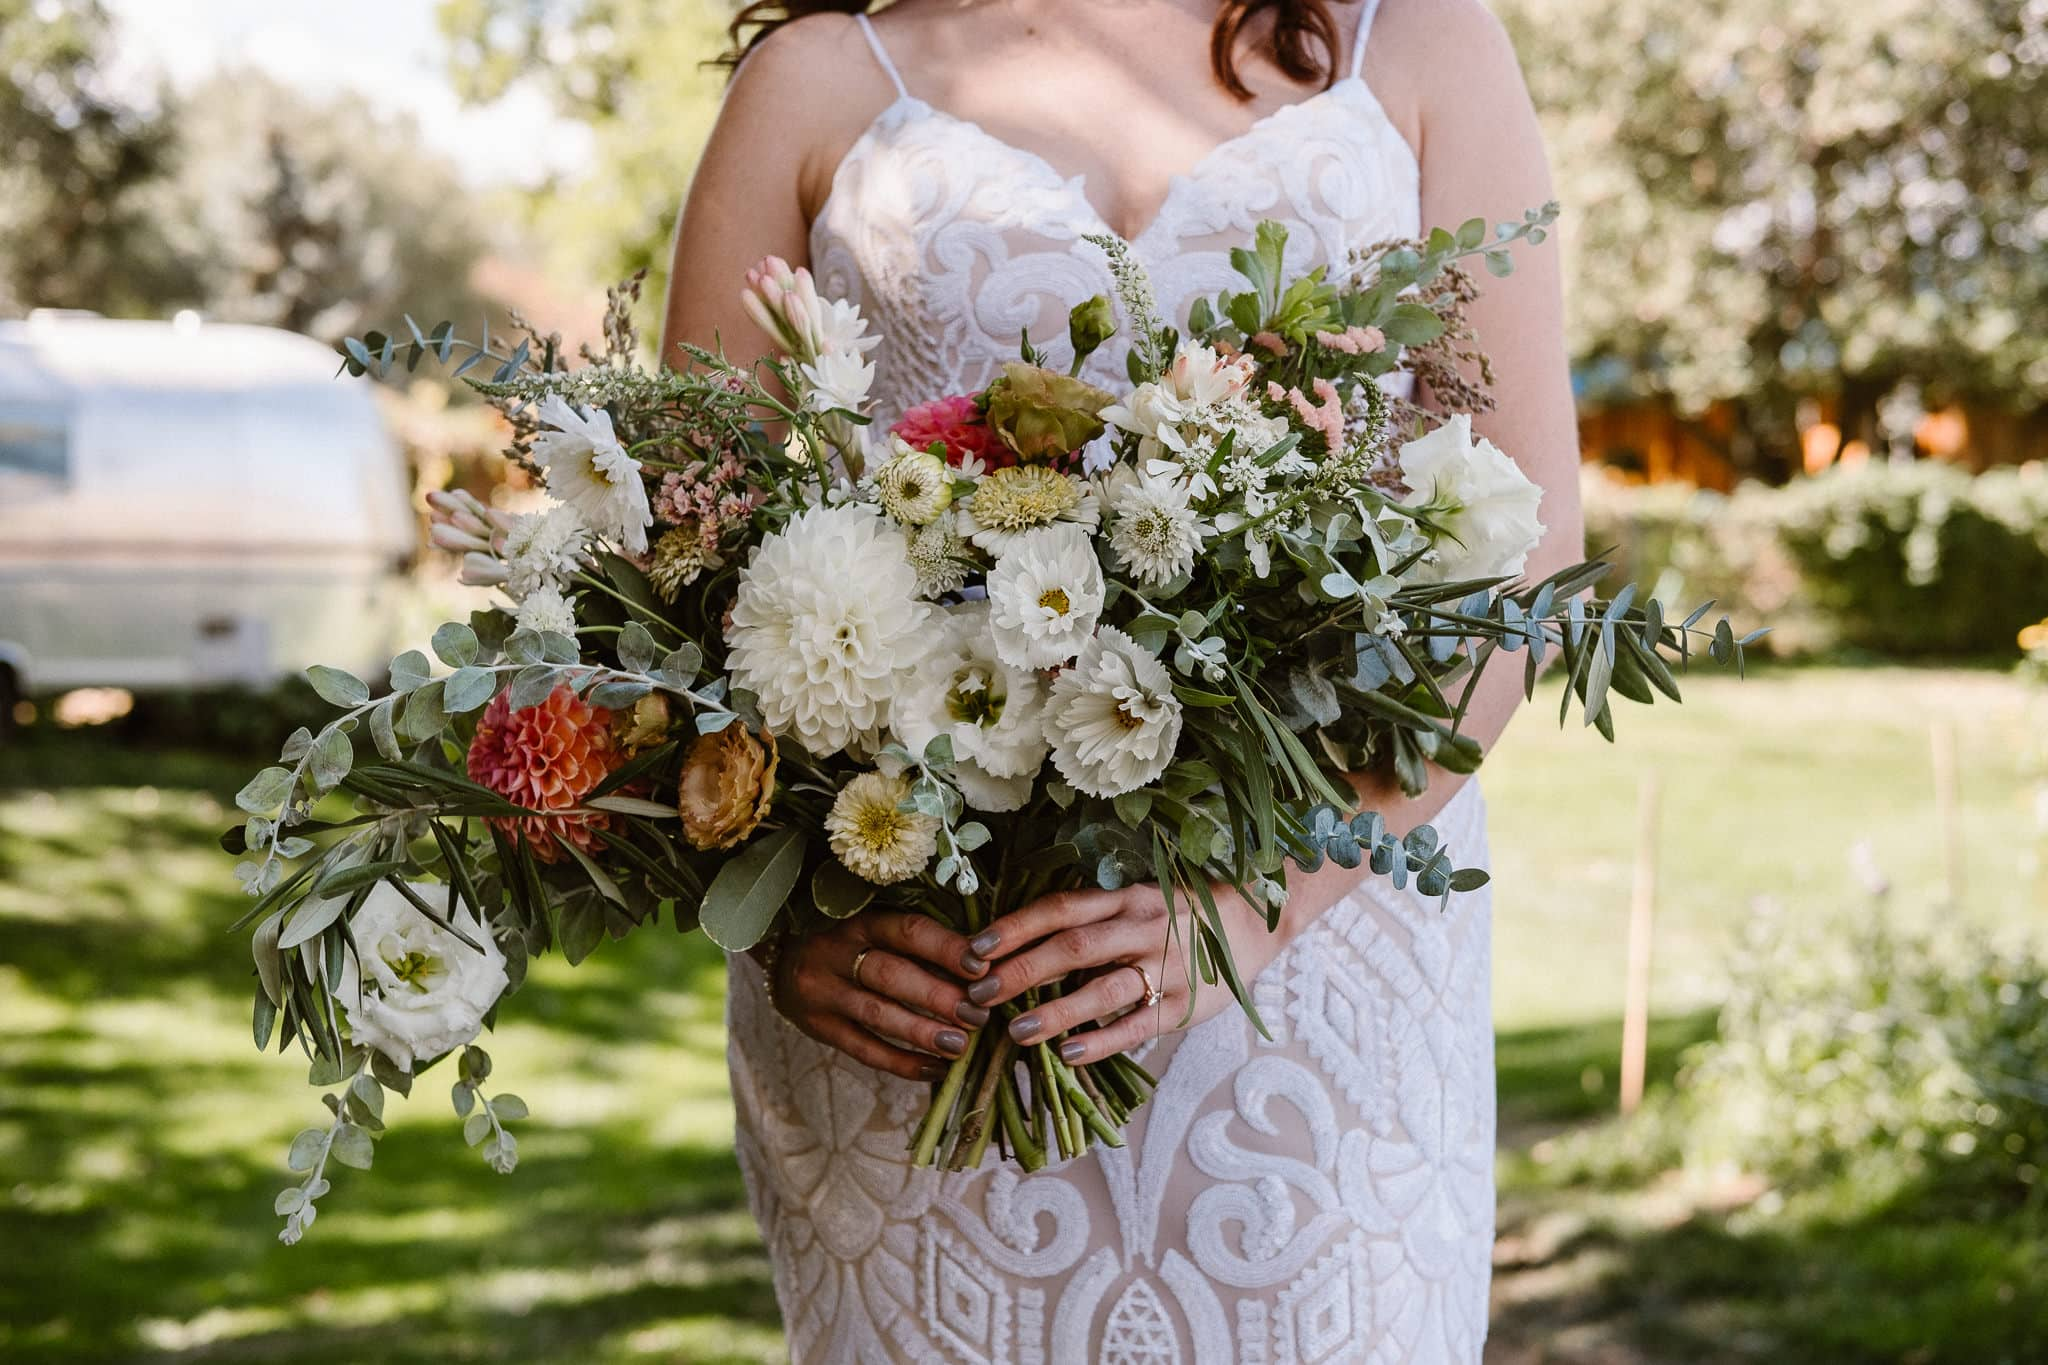 Lyons Farmette wedding photographer, Colorado intimate wedding photographer, bride holding bouquet, wedding bouquet by Farmette Flowers, large cascading bouquet